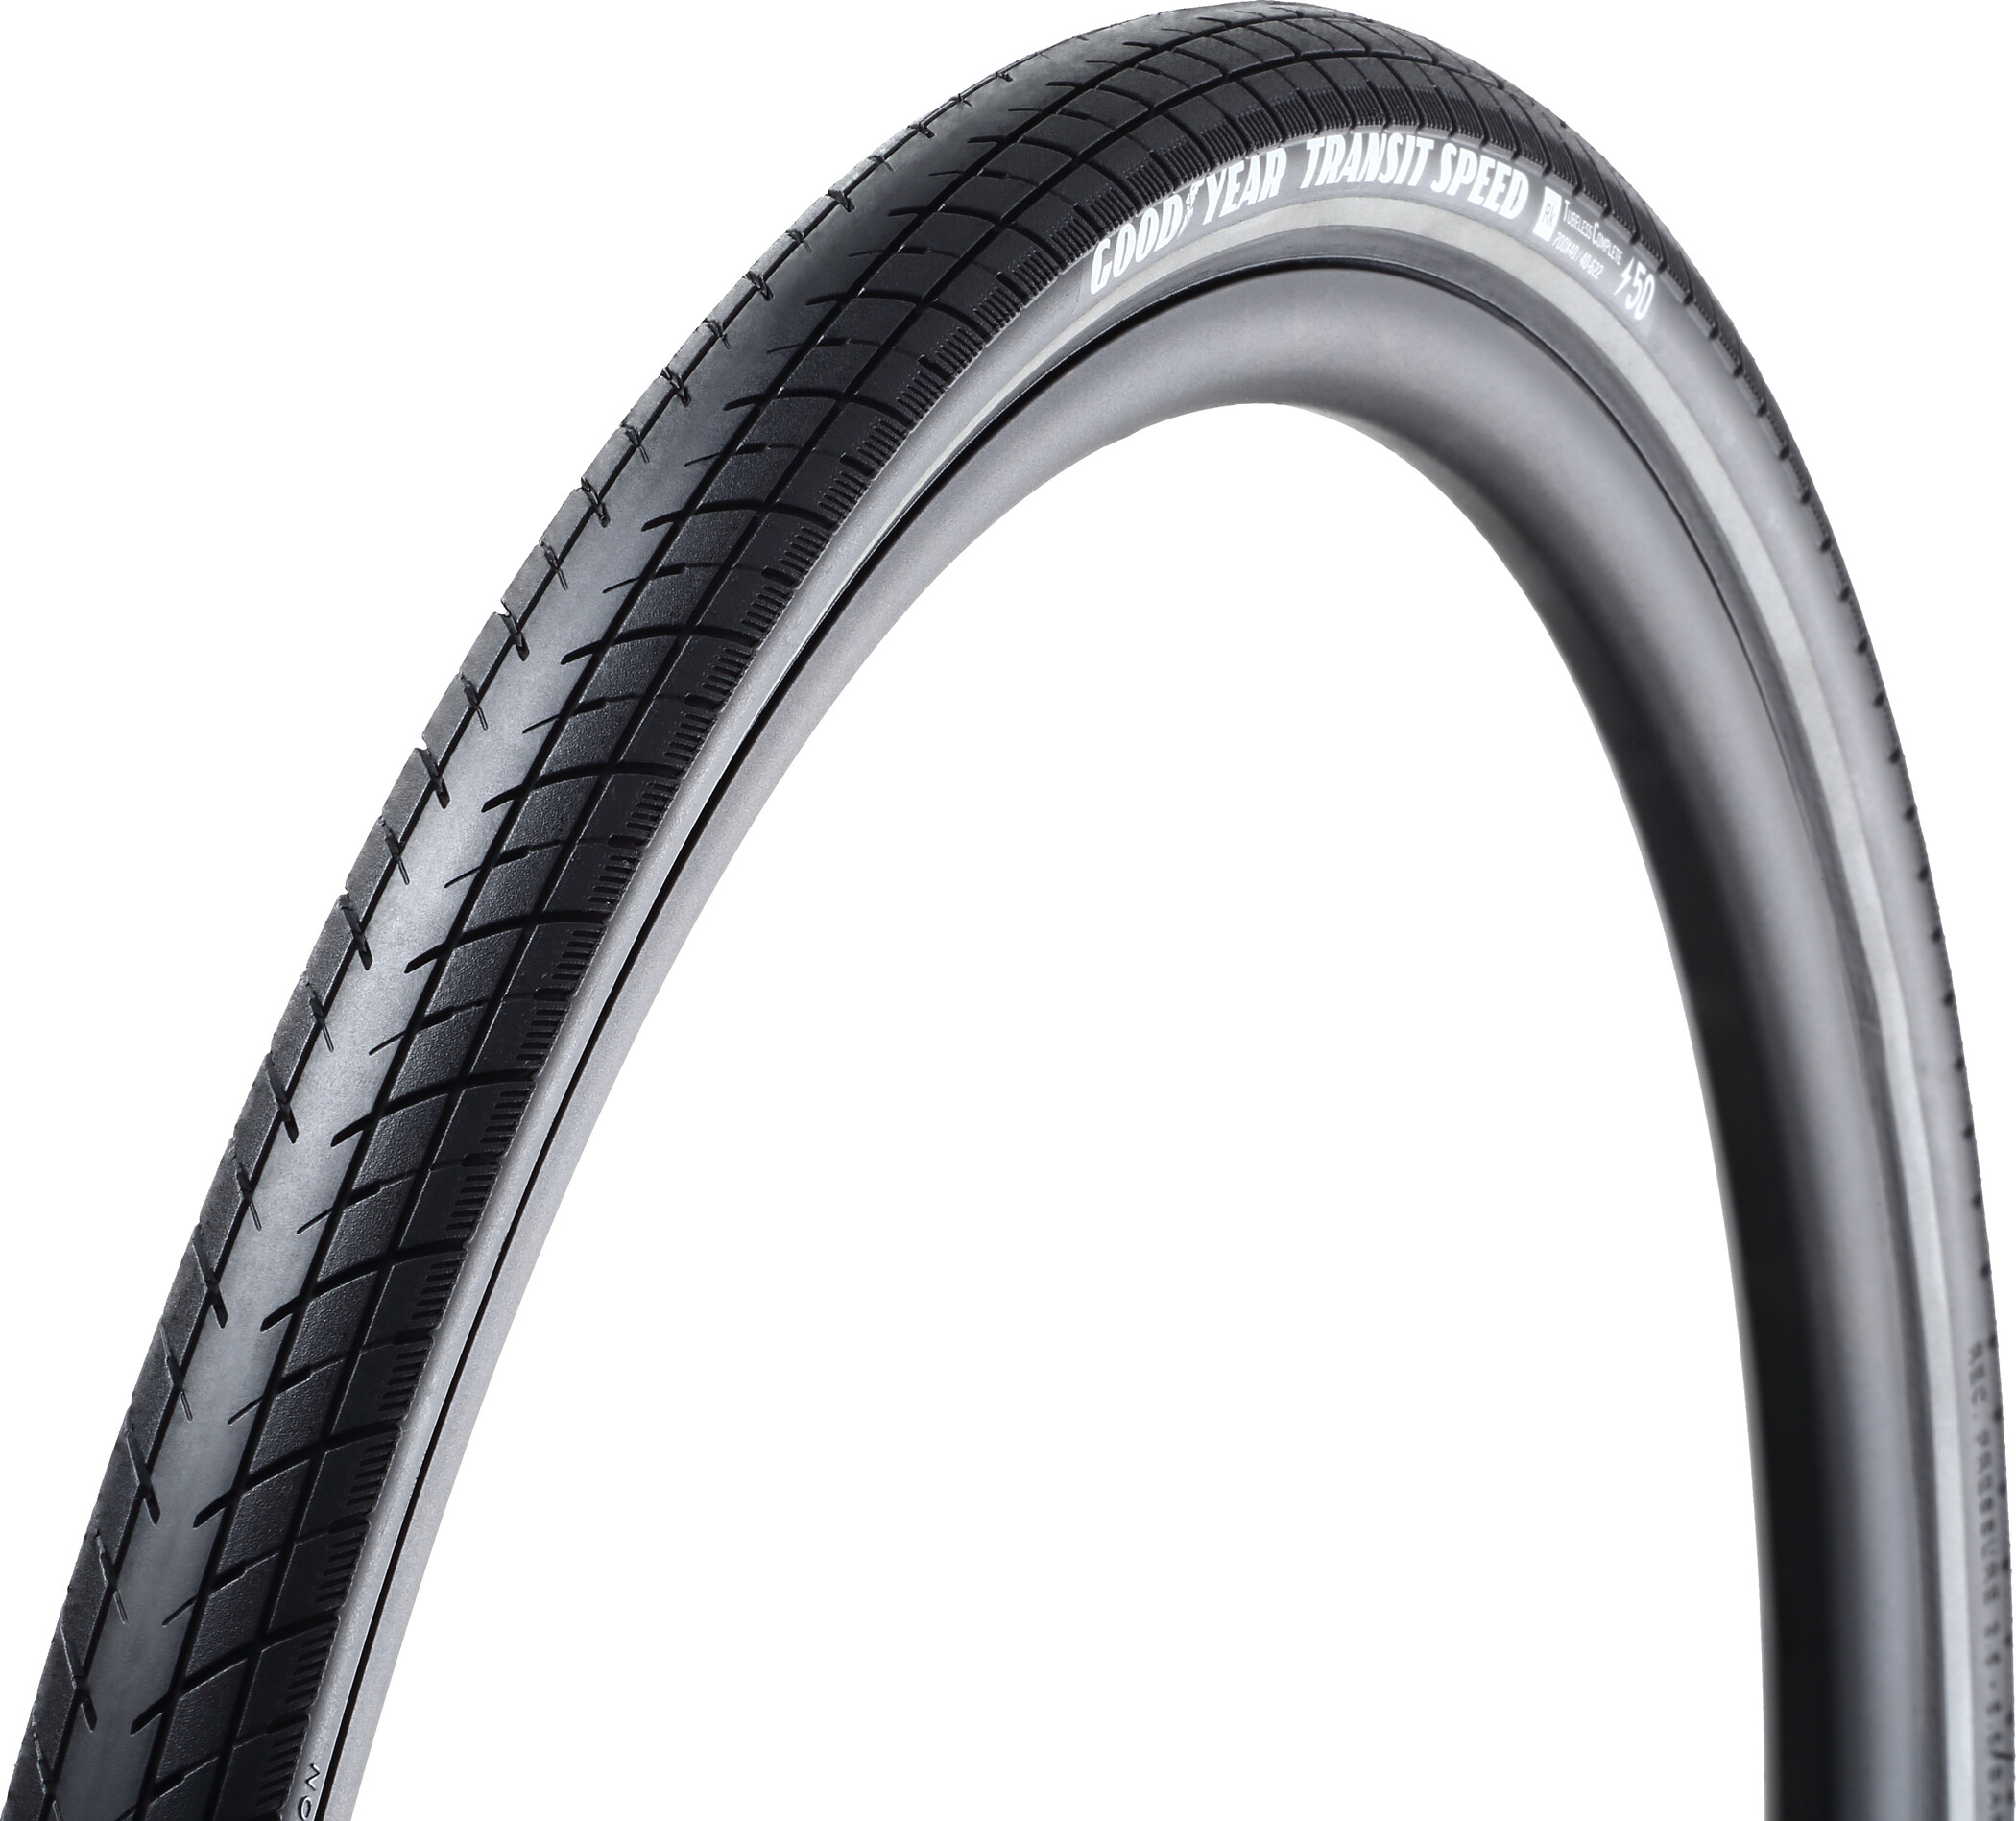 Goodyear Transit Speed Dæk 50-622 Secure e50, black reflected (2019) | Tyres